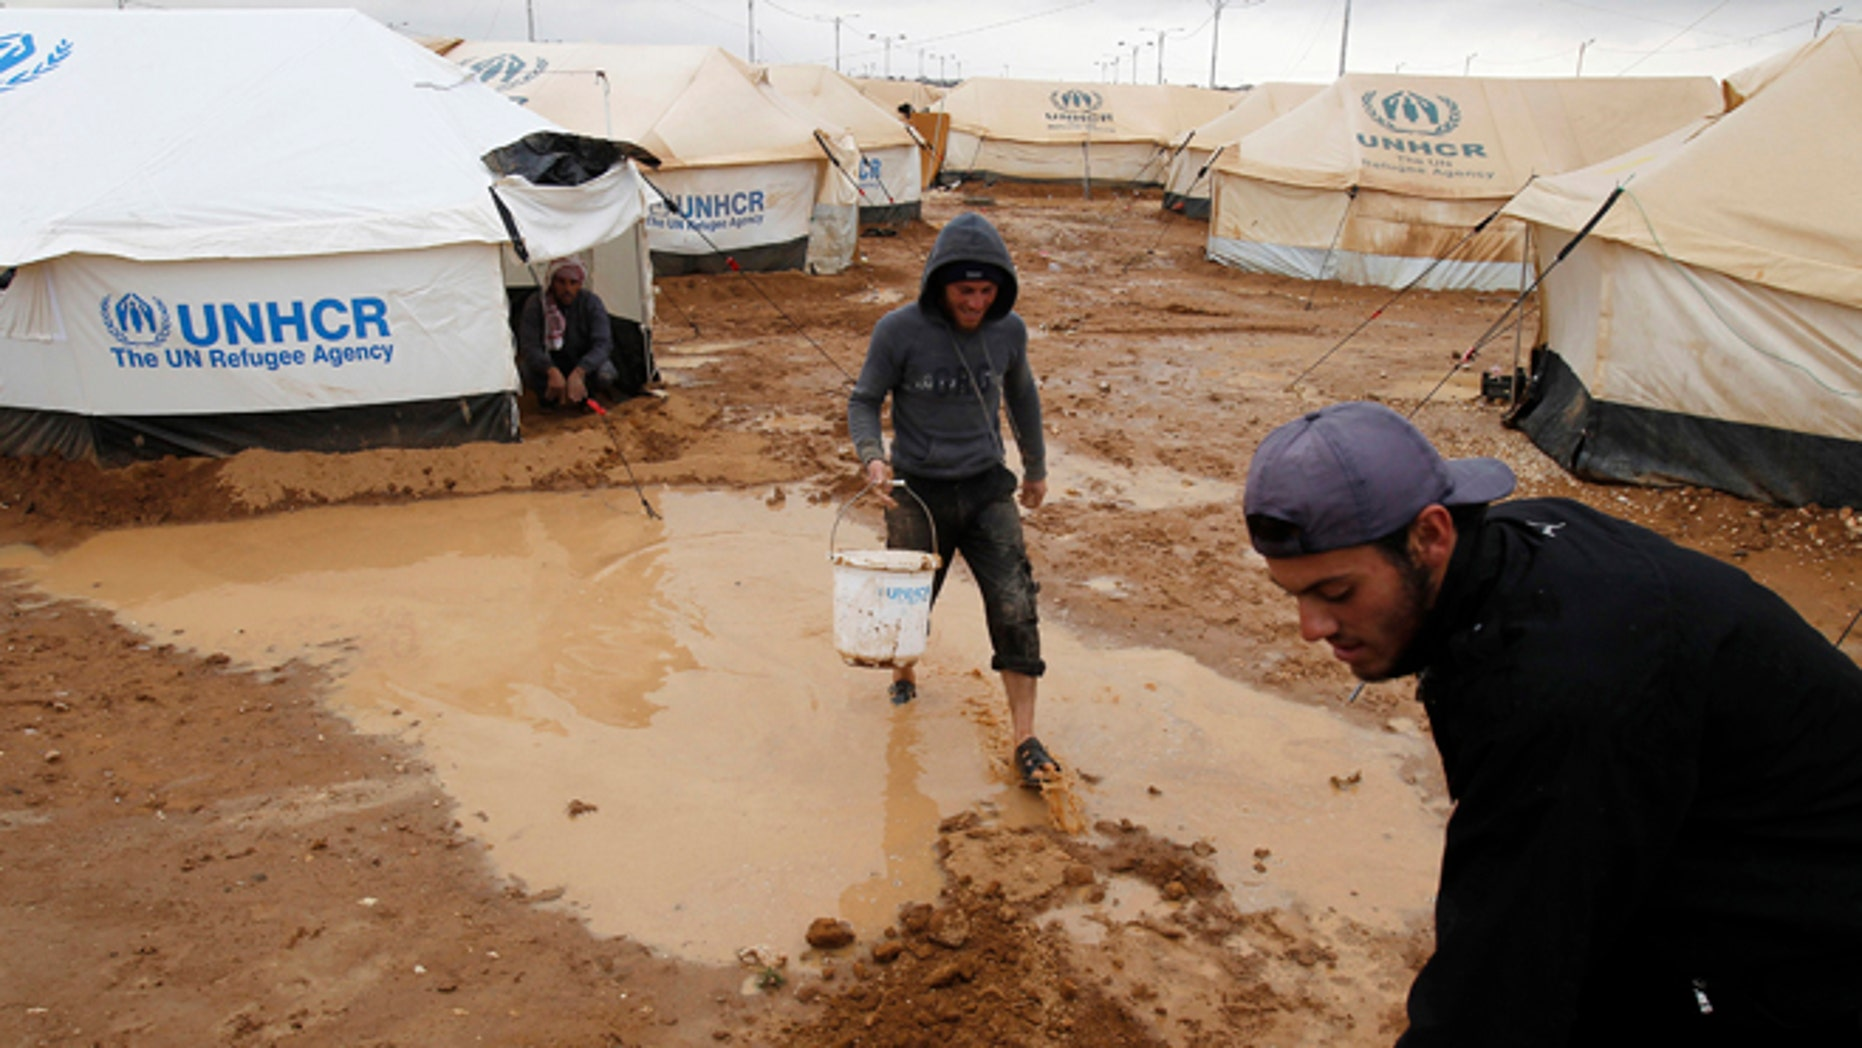 Jan. 8, 2013: Syrian refugees work to clear water collected outside their tents after heavy rain at the Al-Zaatari refugee camp in the Jordanian city of Mafraq, near the border with Syria.